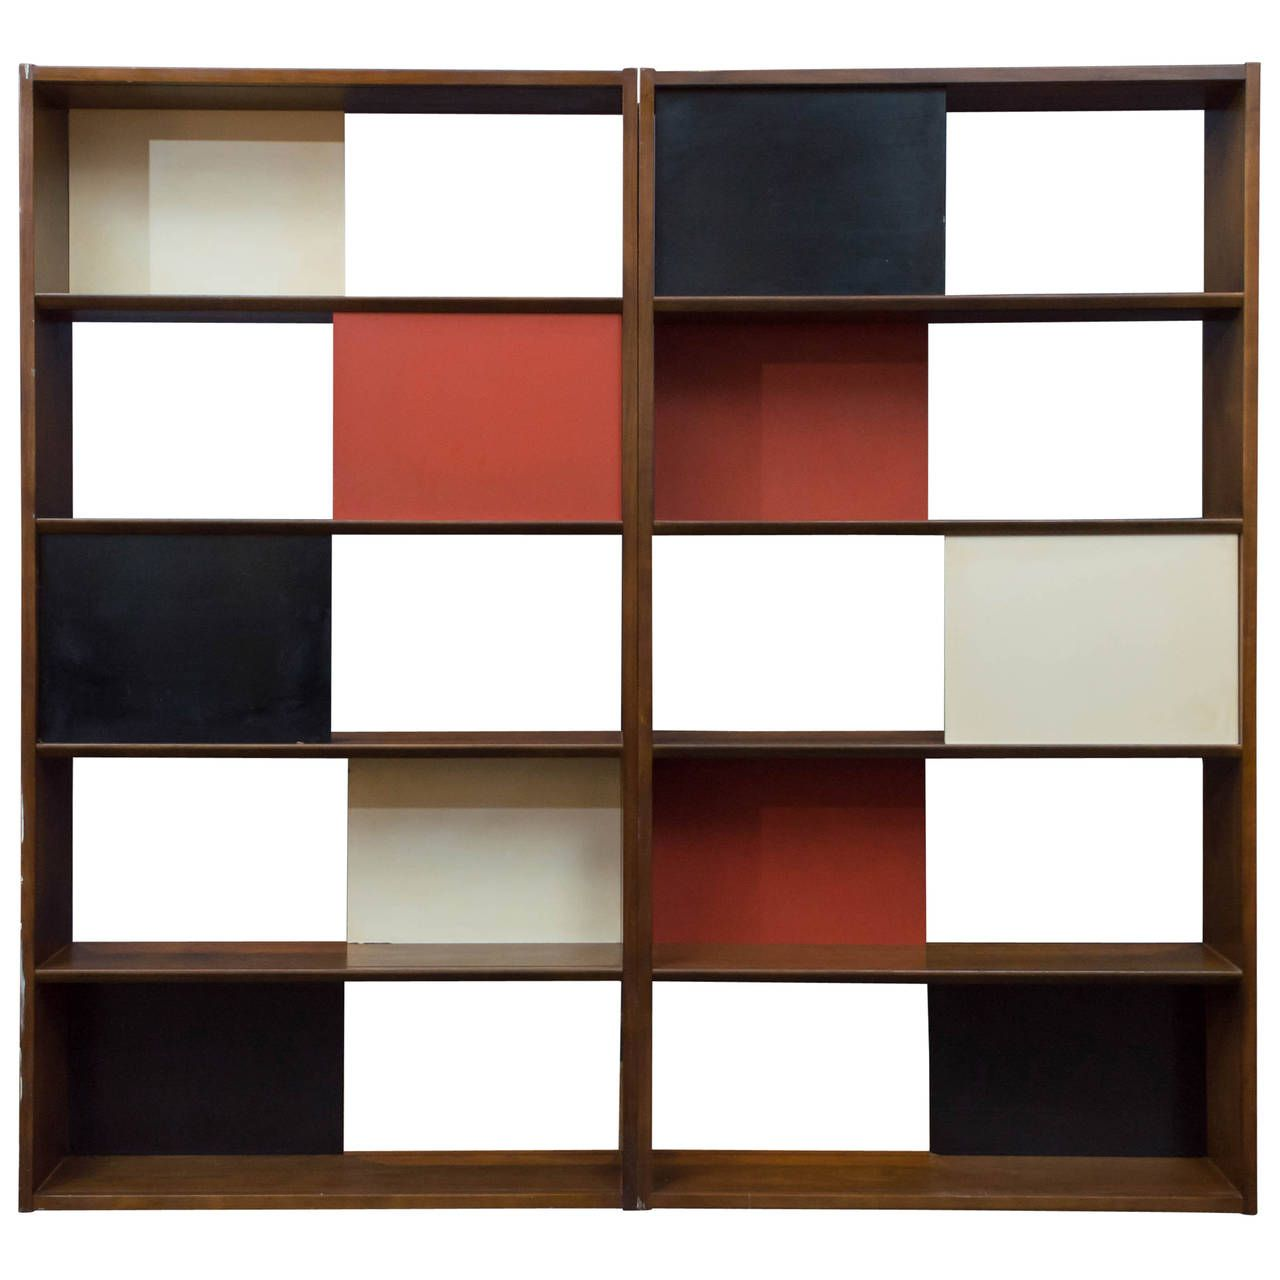 Modern room divider bookcase - Mid Century Modern Room Divider Bookcase By Evans Clark For Glenn For Some